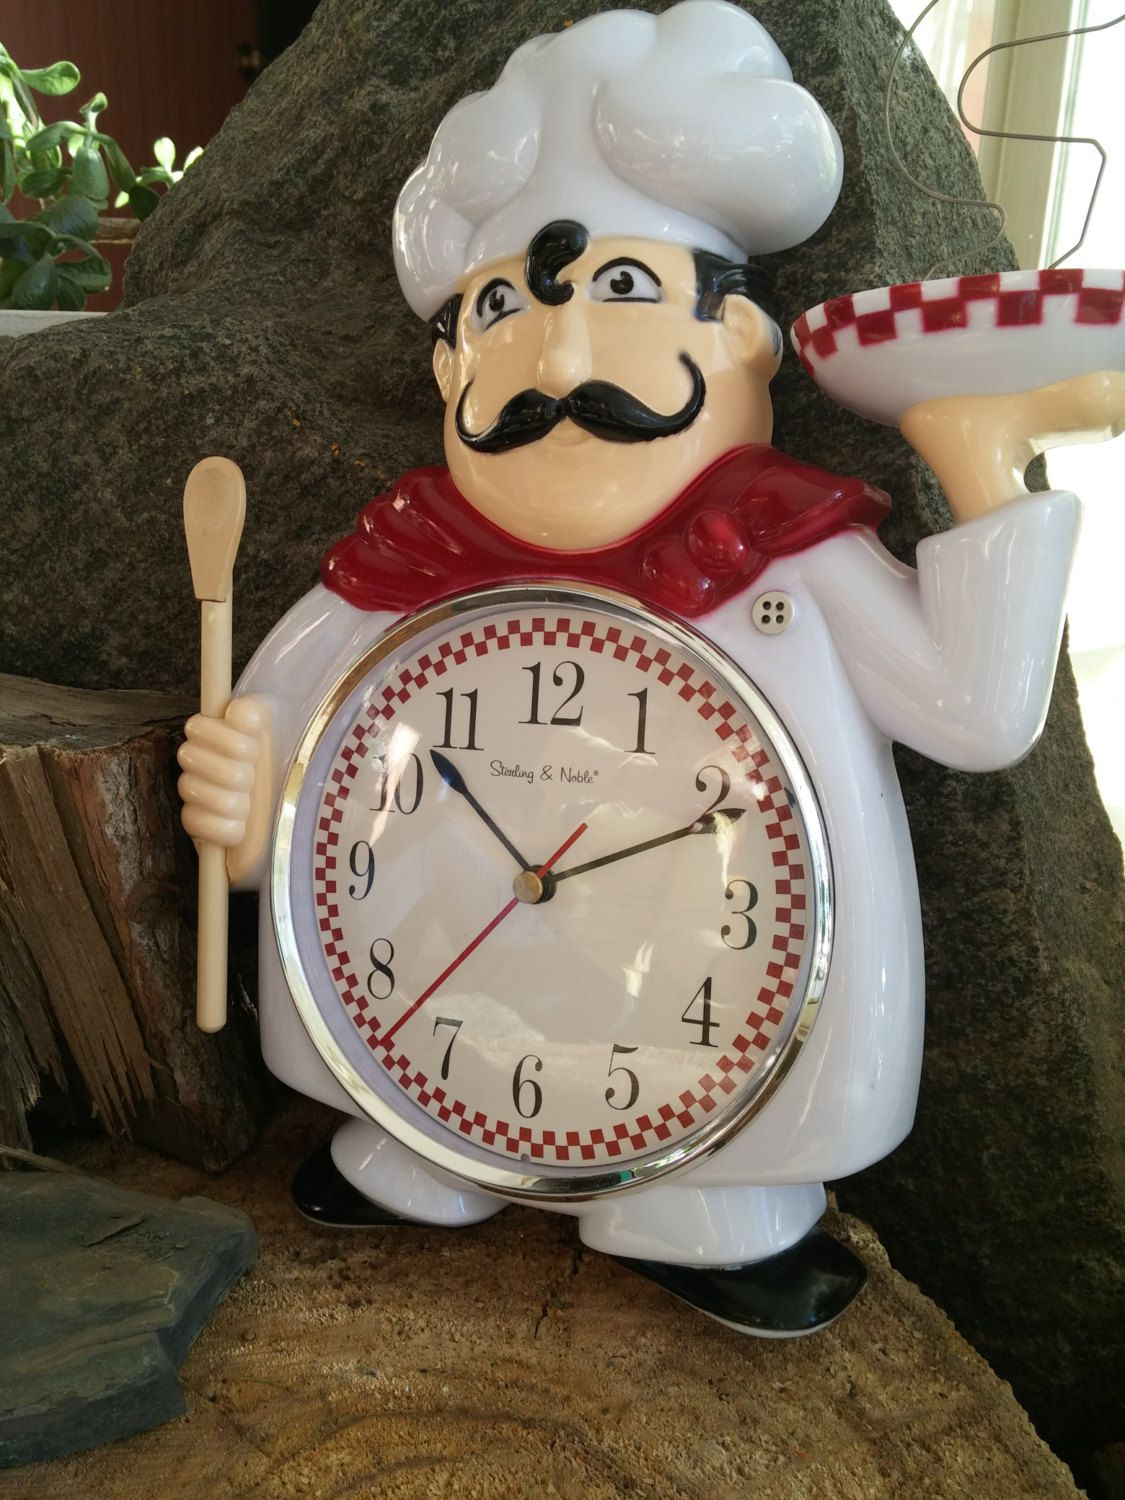 Strange Chef Wall Clock Sterling And Noble Novelty Red And White Home Interior And Landscaping Transignezvosmurscom